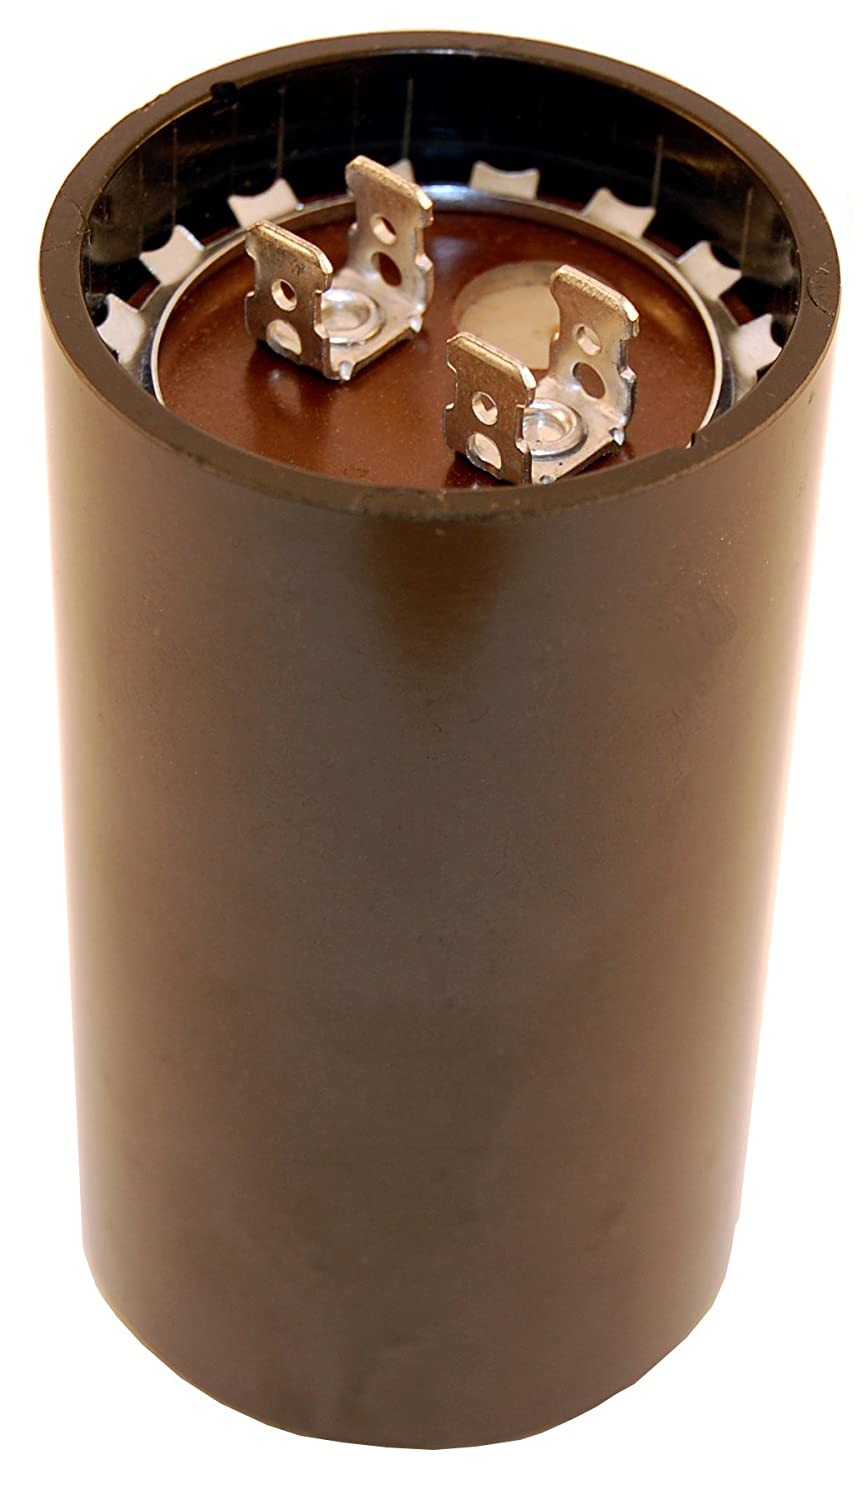 145-174 /µF Capacitance NTE Electronics MSC250V145 Series MSC Motor Start AC Electrolytic Capacitor 220//250V Two 0.250 Quick Connect Terminals Inc. Two 0.250 Quick Connect Terminals